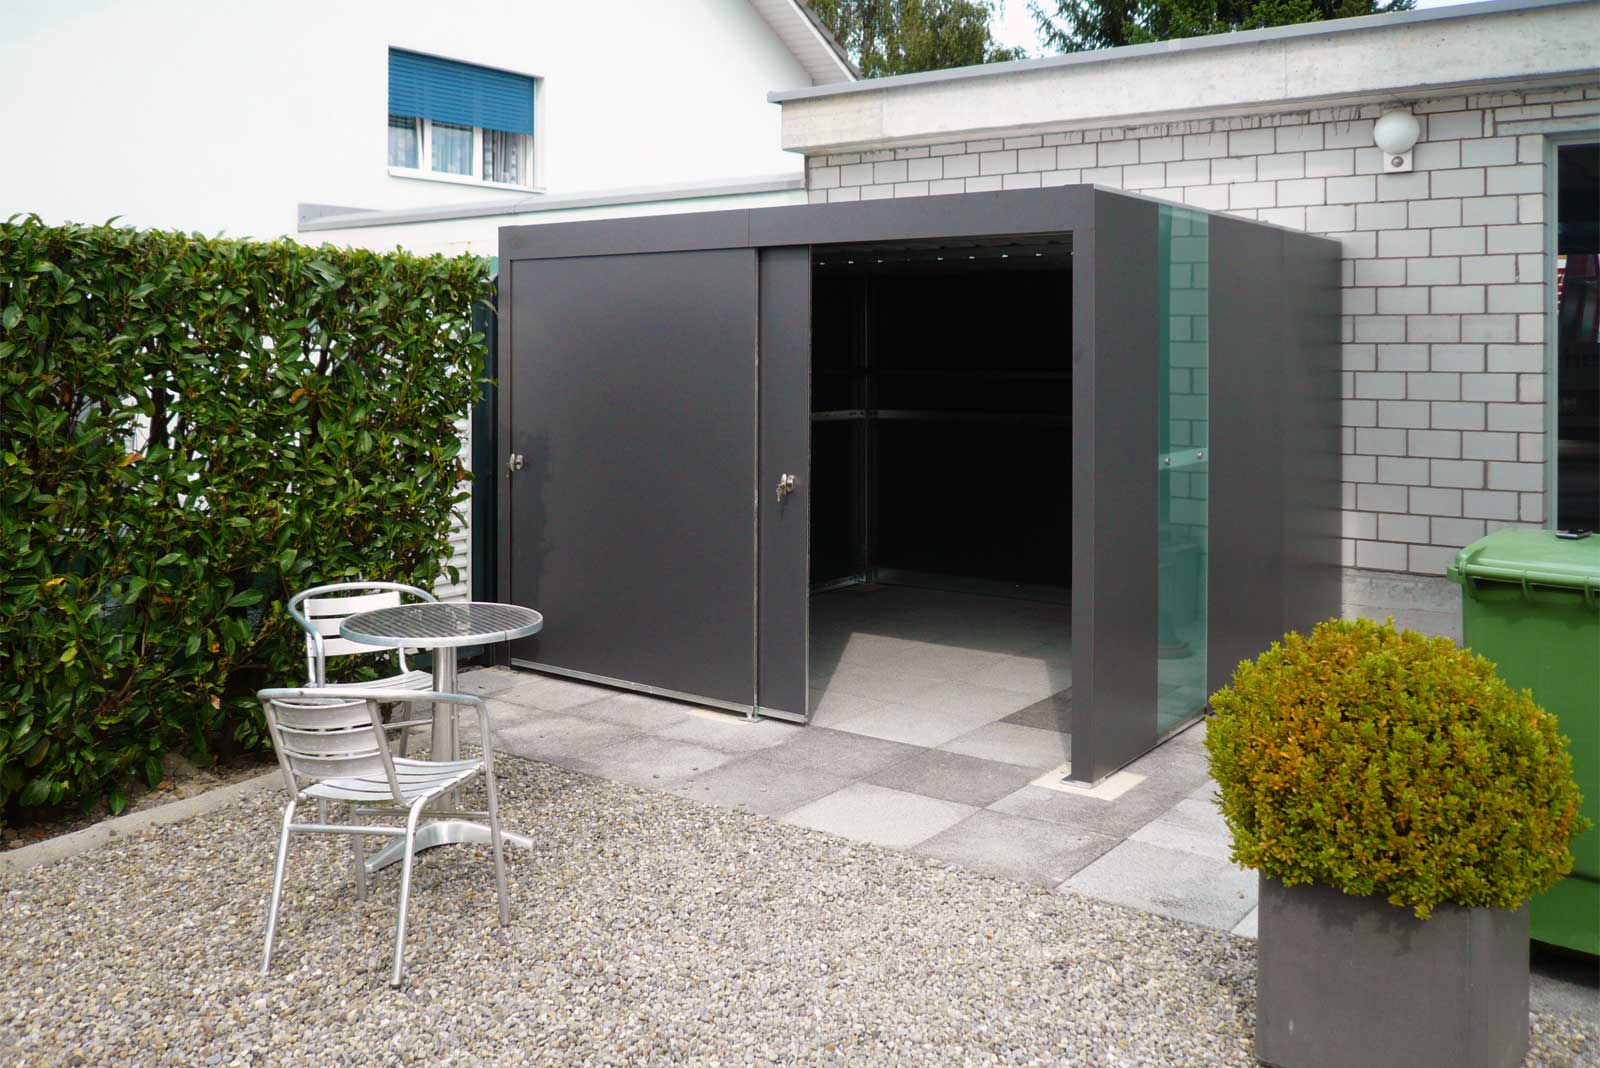 Velogarage for security and protection by Velopa AG, Switzerland